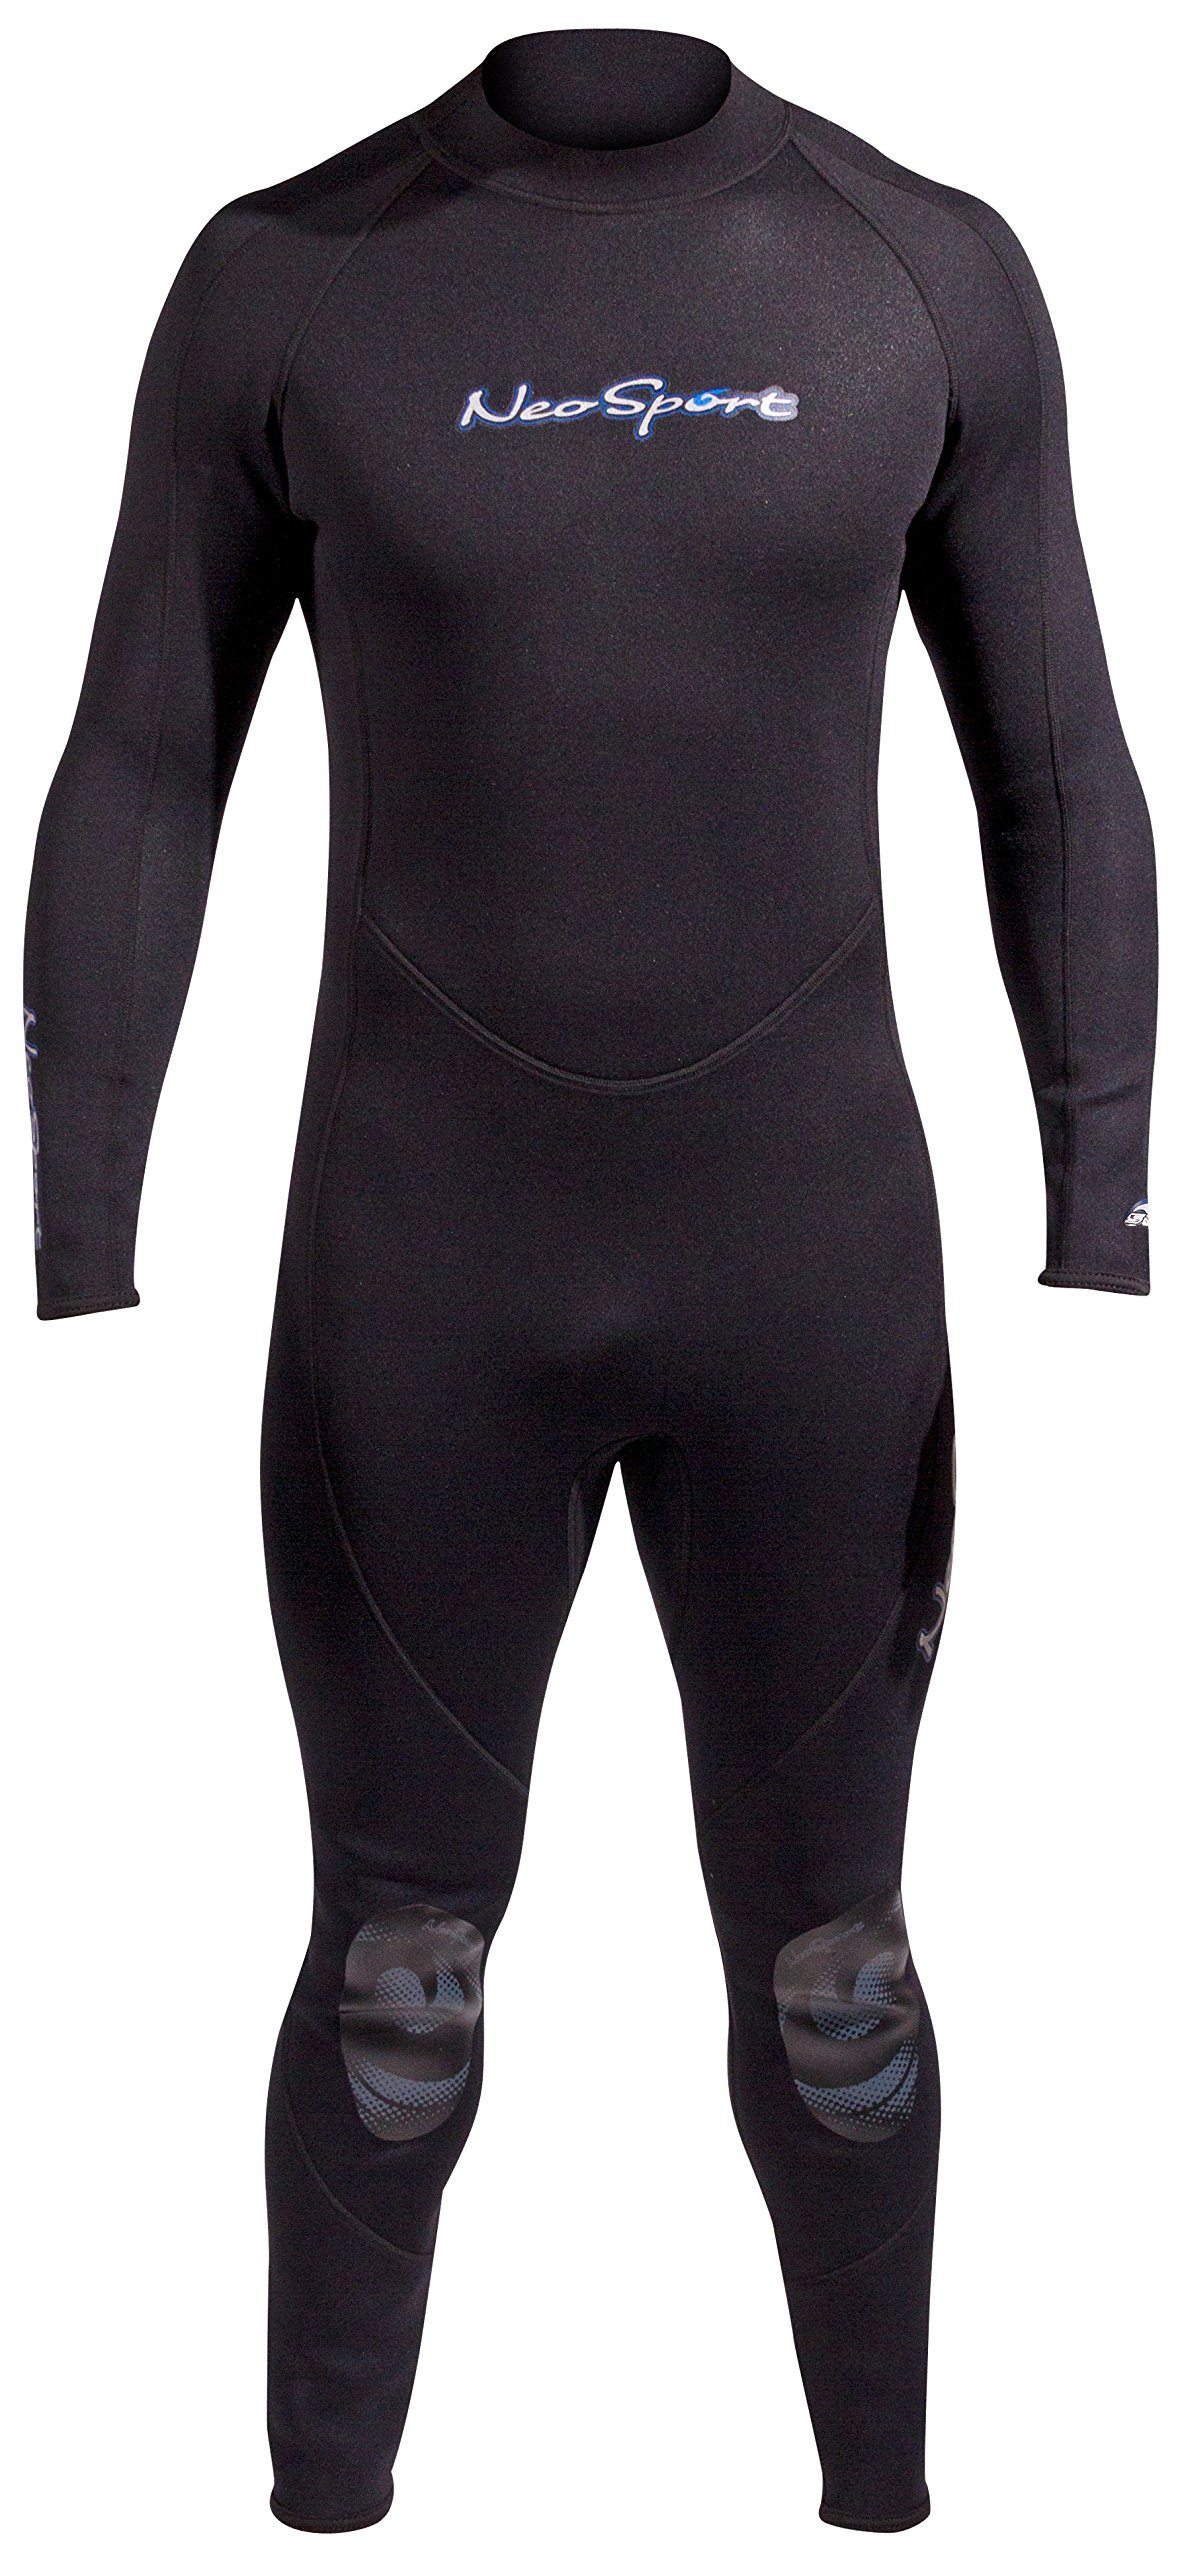 NeoSport Wetsuits Men's Premium Neoprene 5mm Full Suit, Black, Small - Diving, Snorkeling & Wakeboarding by Neo-Sport